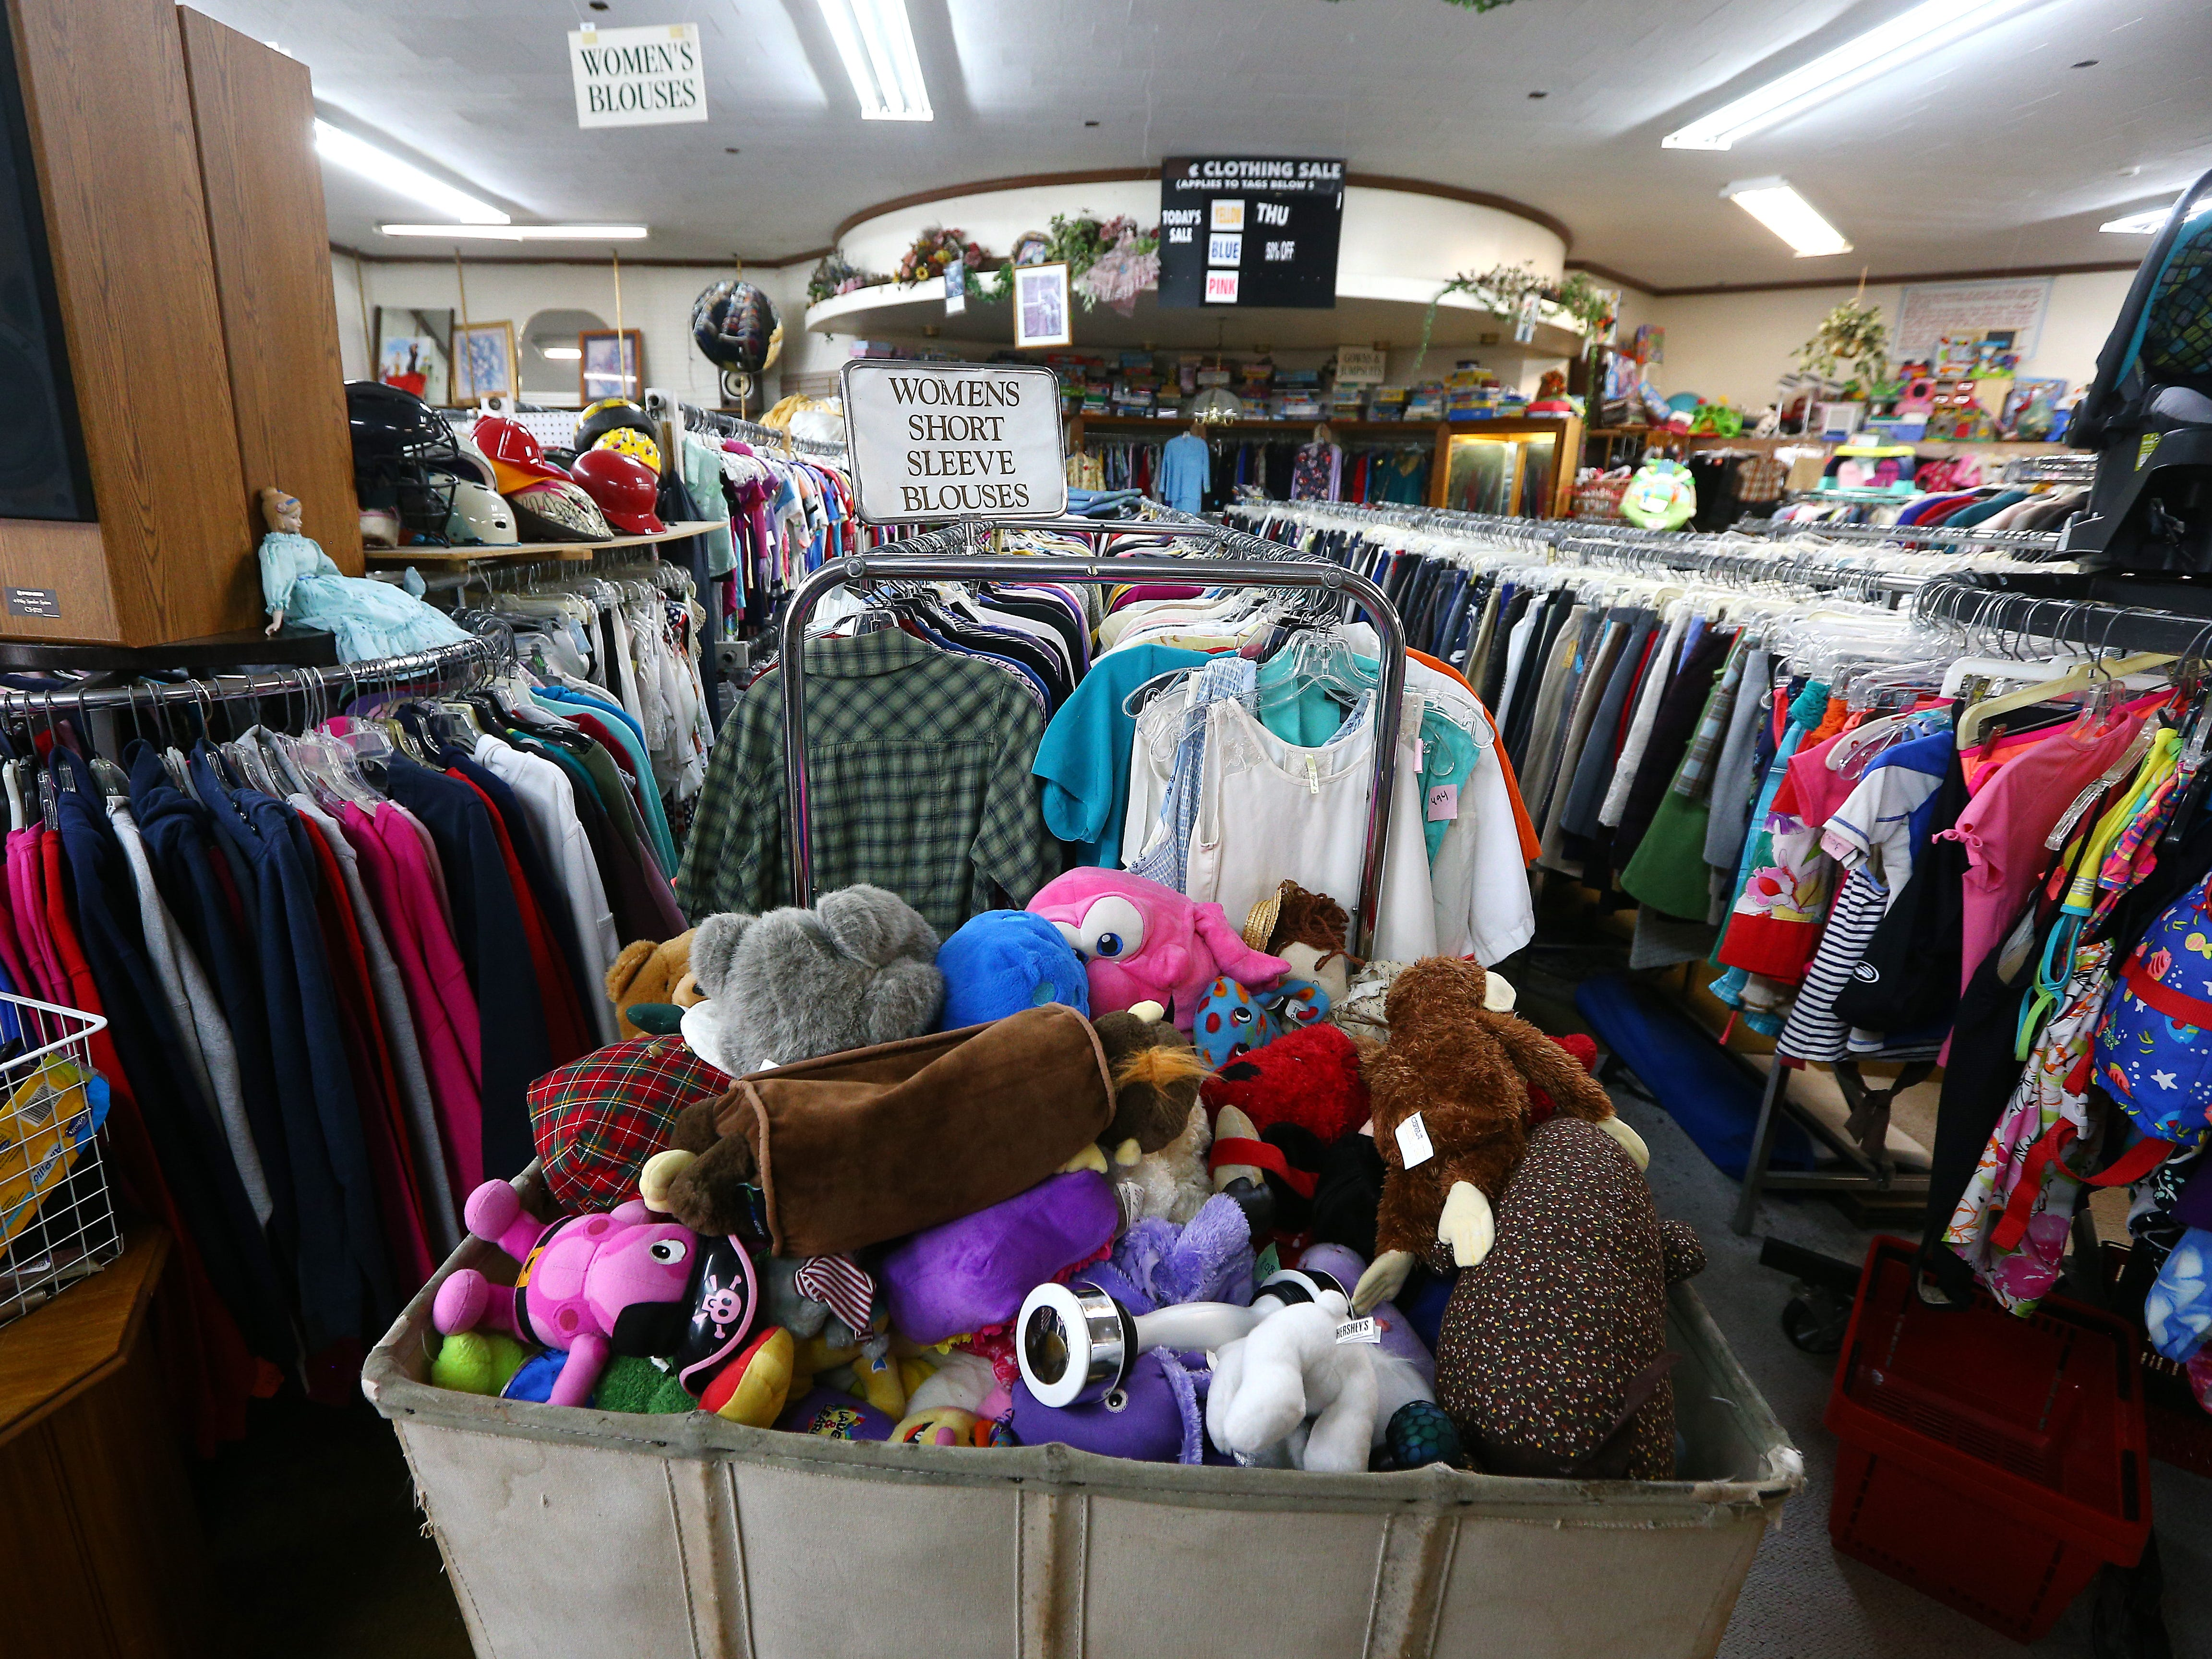 The Morris Thrift Store in Dover, open for 40 years will close at the end of the year.The most recent owner Stan and Maria Bush are retiring and have sold it, the new owner will not keep it as a thrift store. September 28, 2018, Dover, NJ